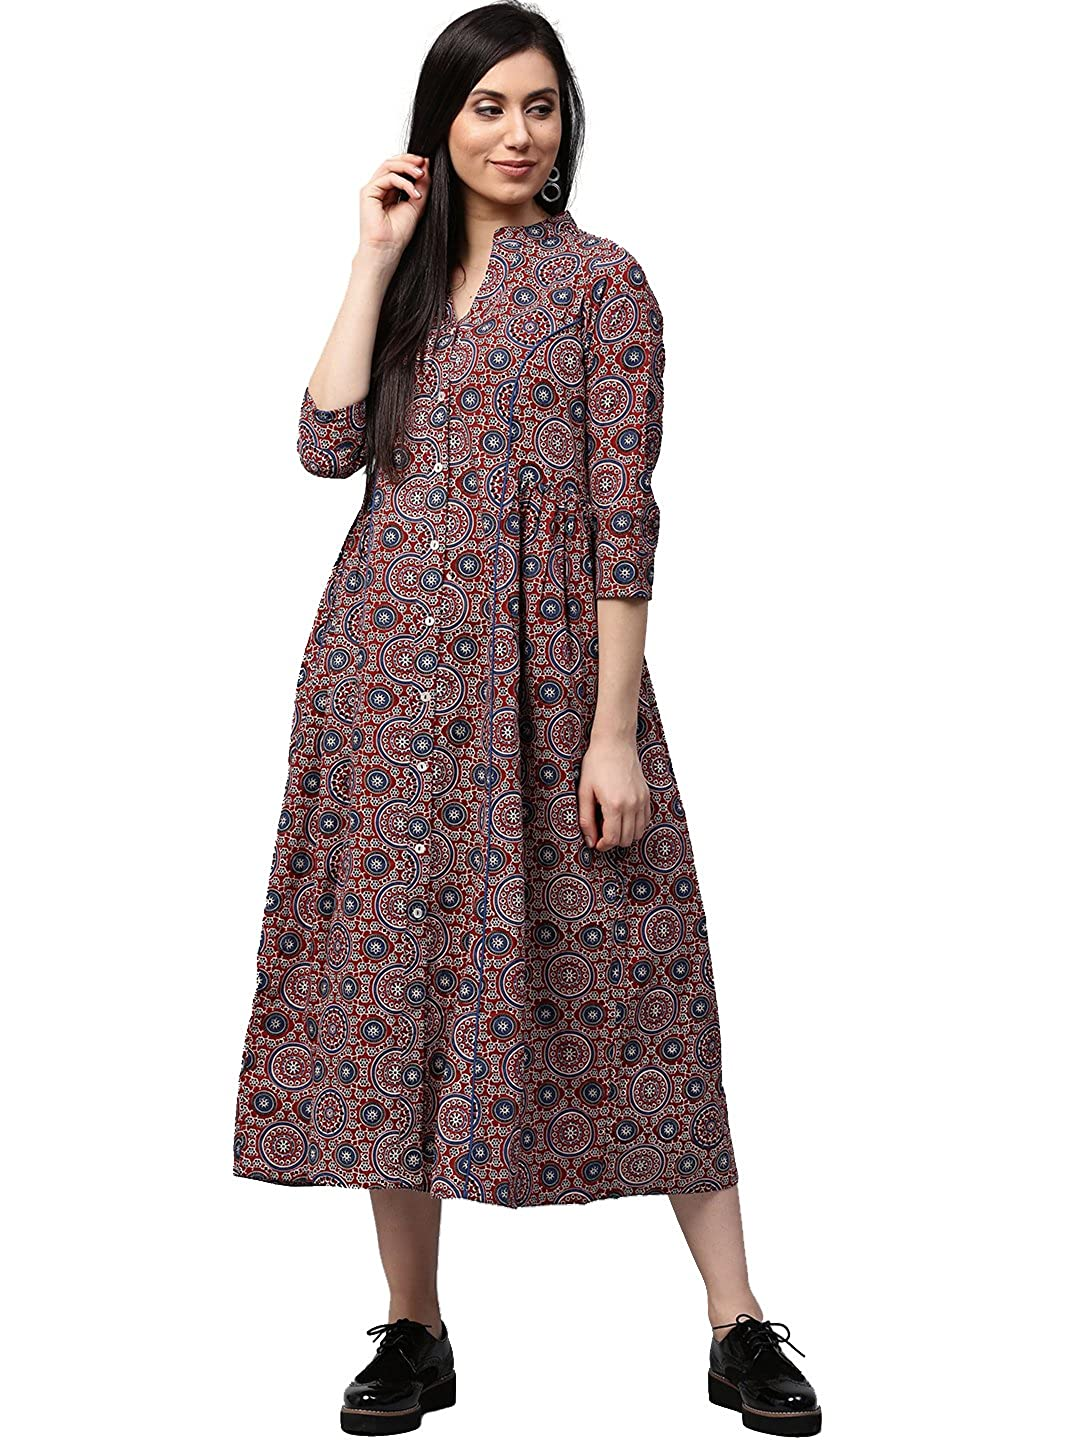 Jaipur Kurti Women Maroon Geometrical Print A-line 48 Length Cotton Dress Nandani Creation Ltd.